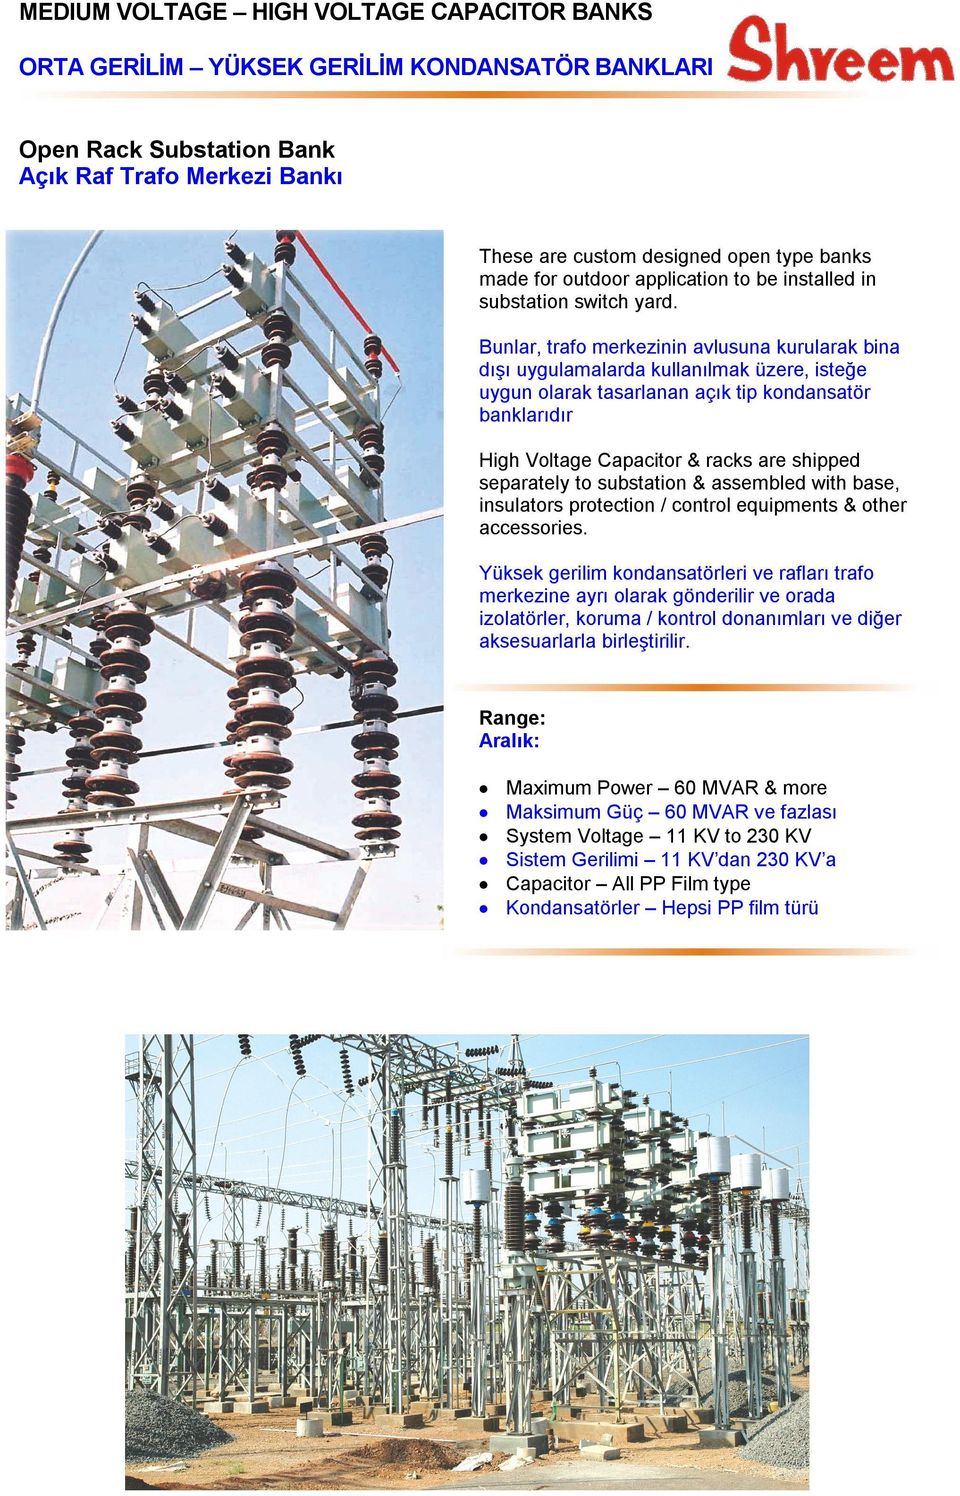 separately to substation & assembled with base, insulators protection / control equipments & other accessories.